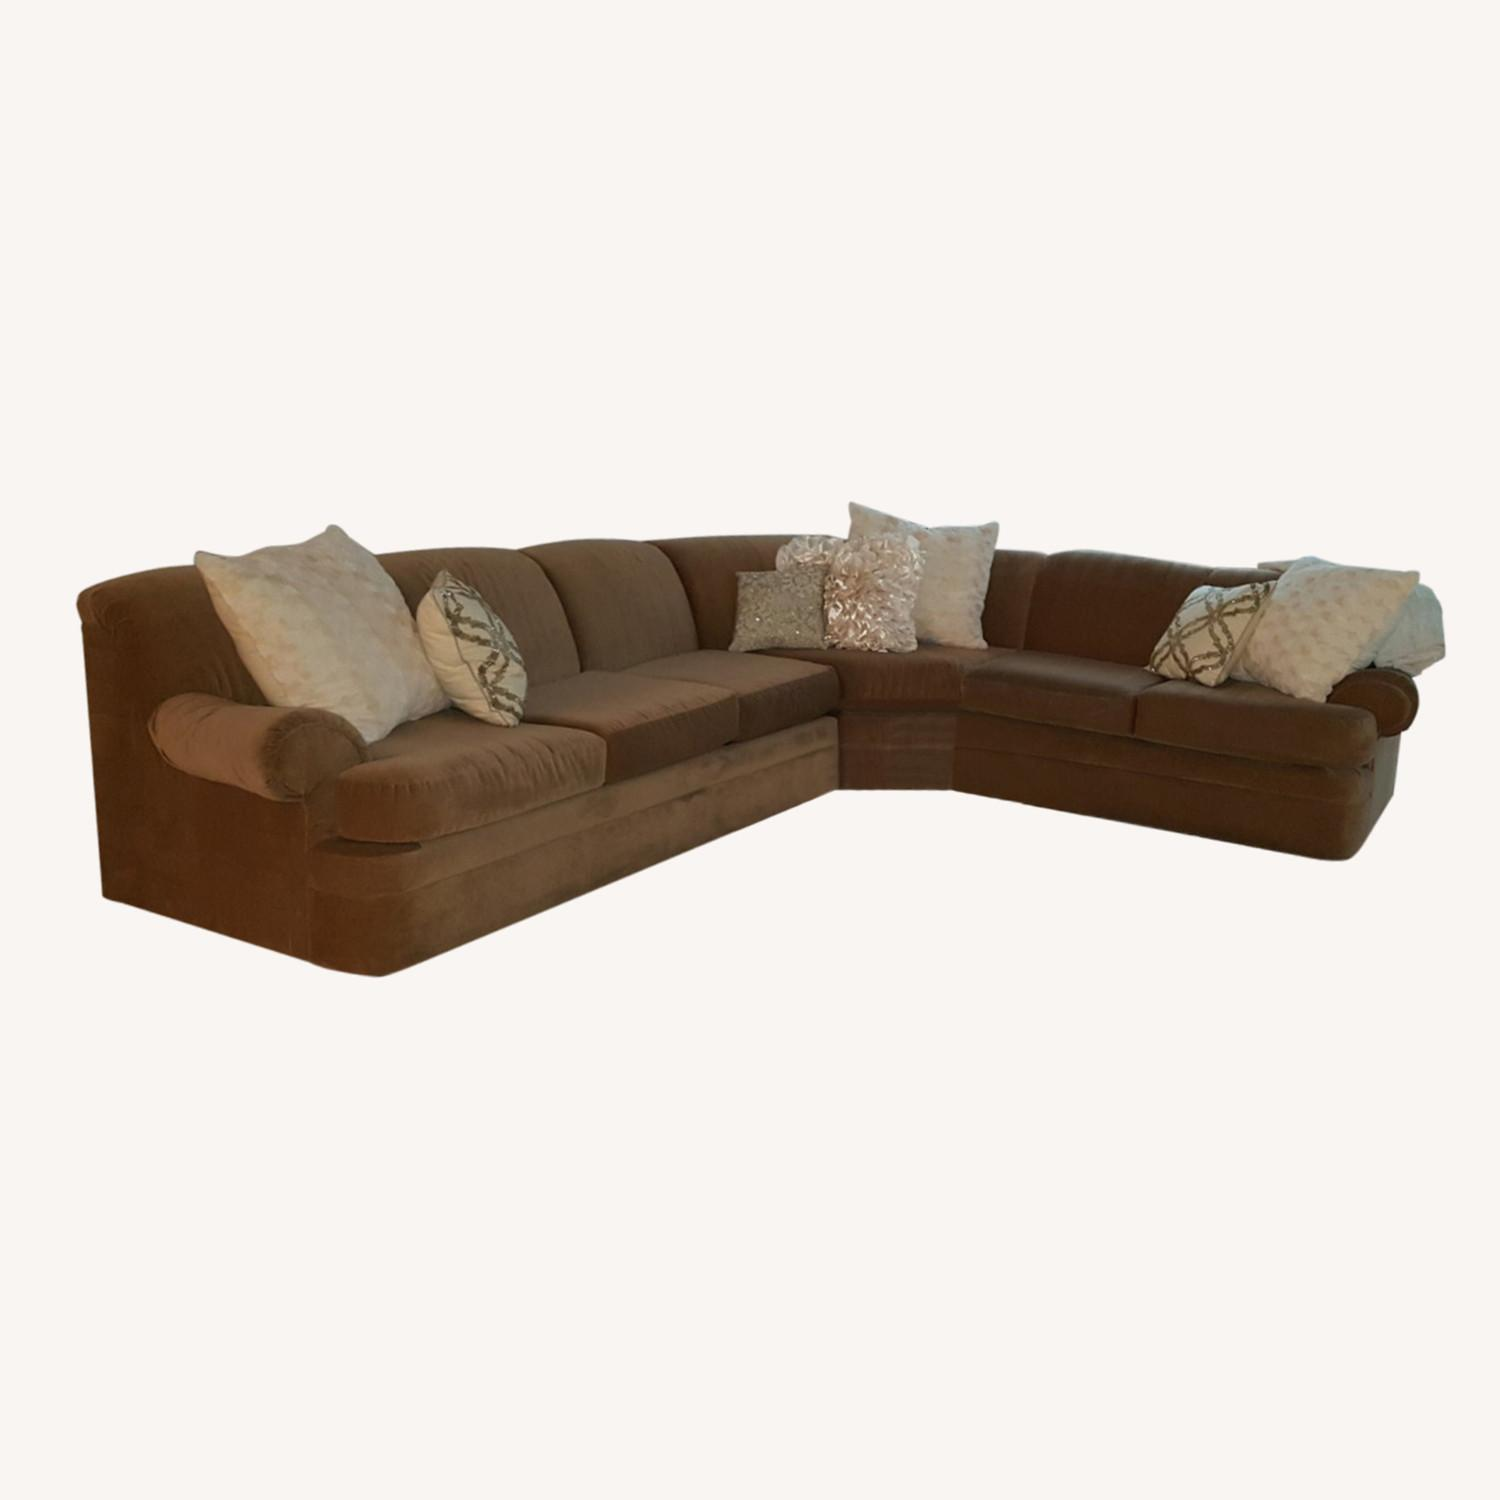 Sectional Sofa with Pullout Queen Bed - image-0